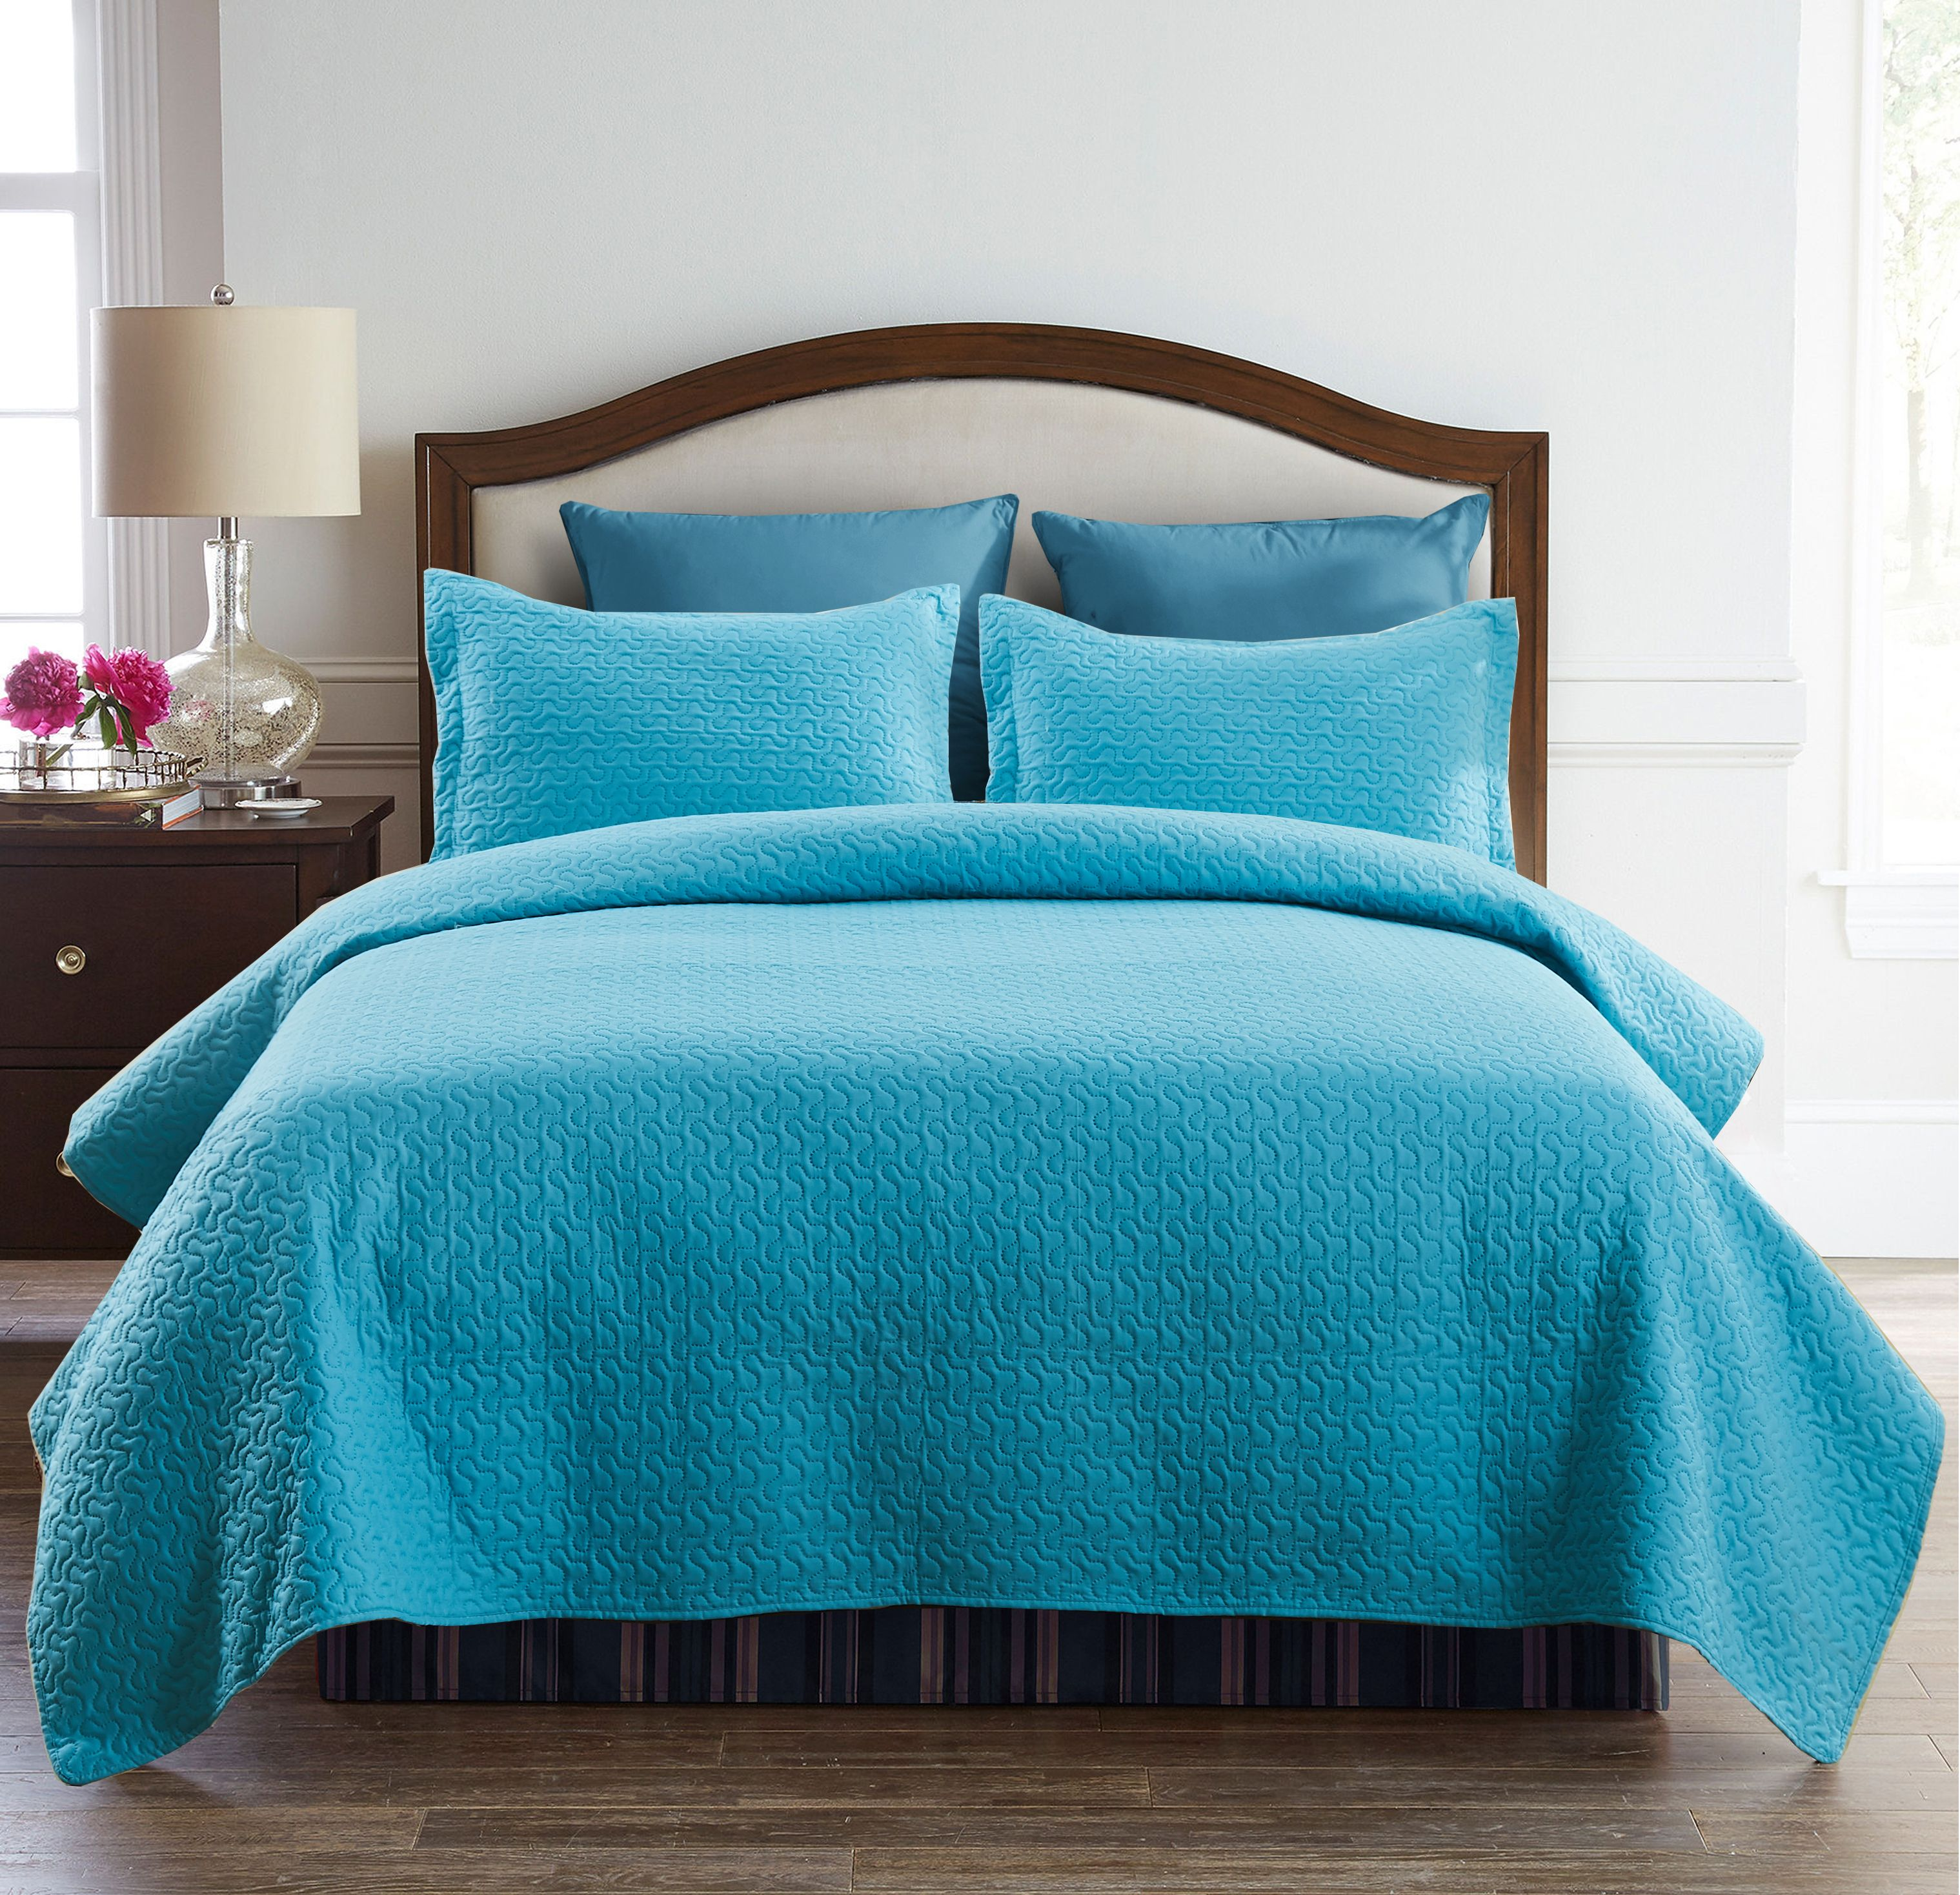 Beige Blue Charcoal Diadmond Bedspreads Coverlet with Ruffle 3 PC Soft Quilt Set